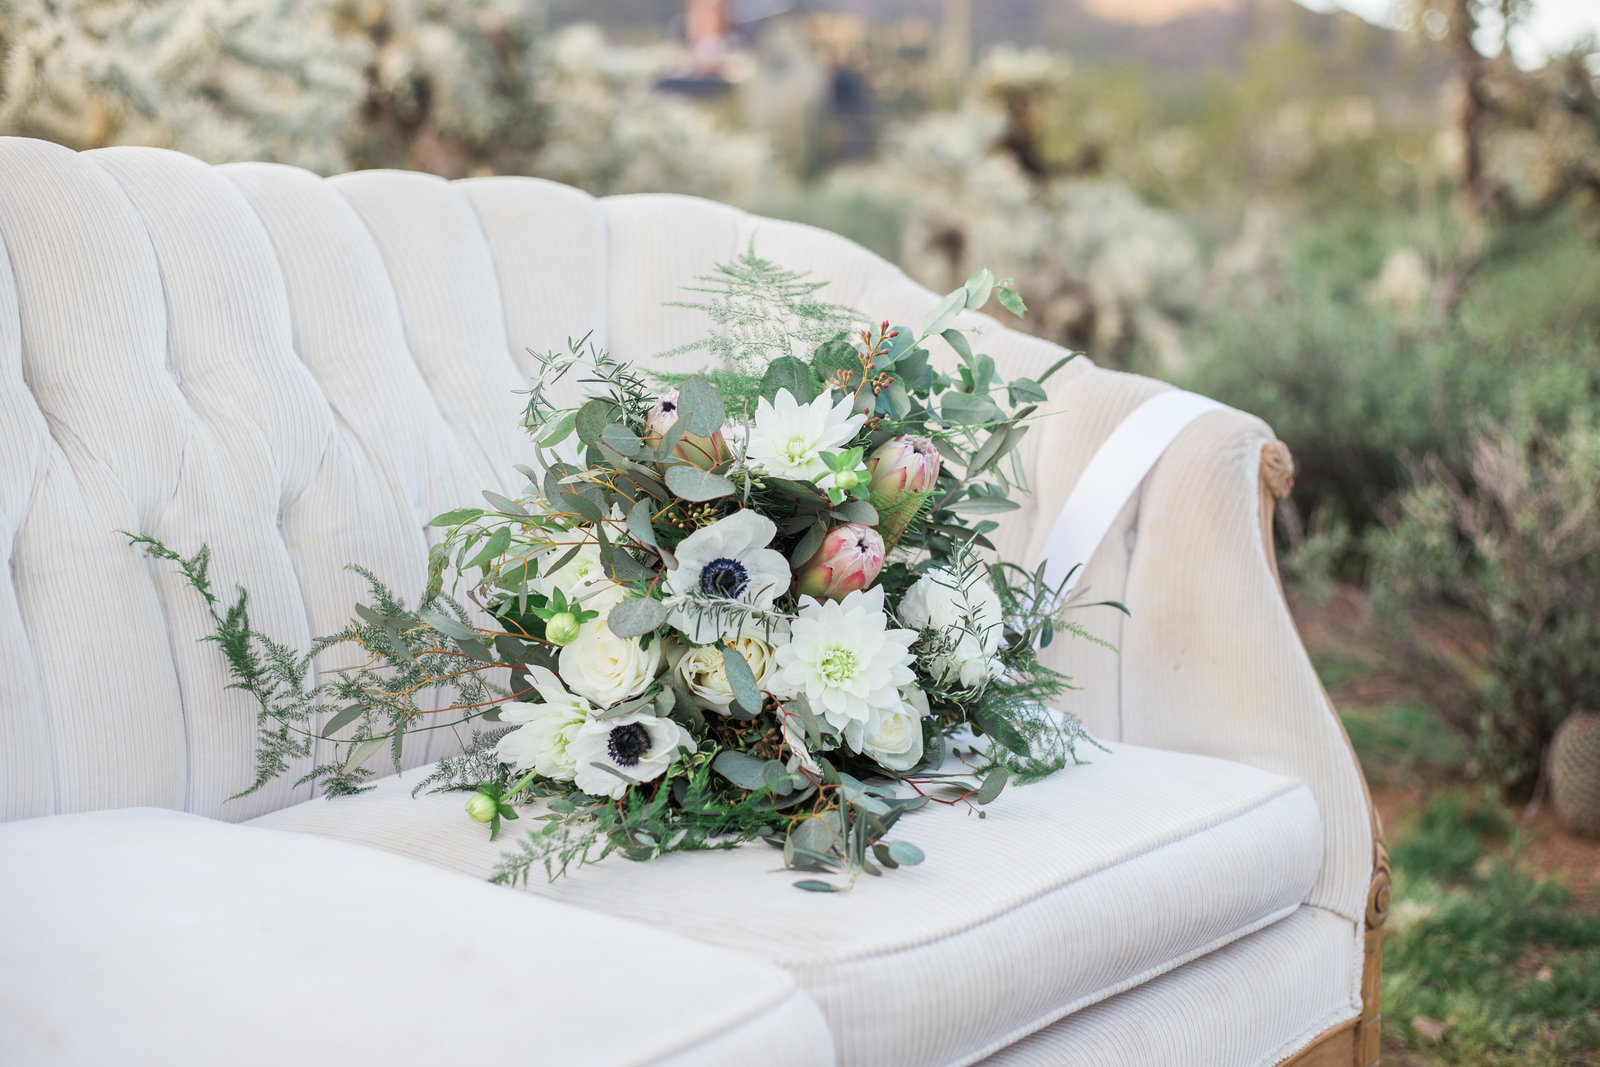 Your-Event-Florist-Arizona-Wedding-Flowers4